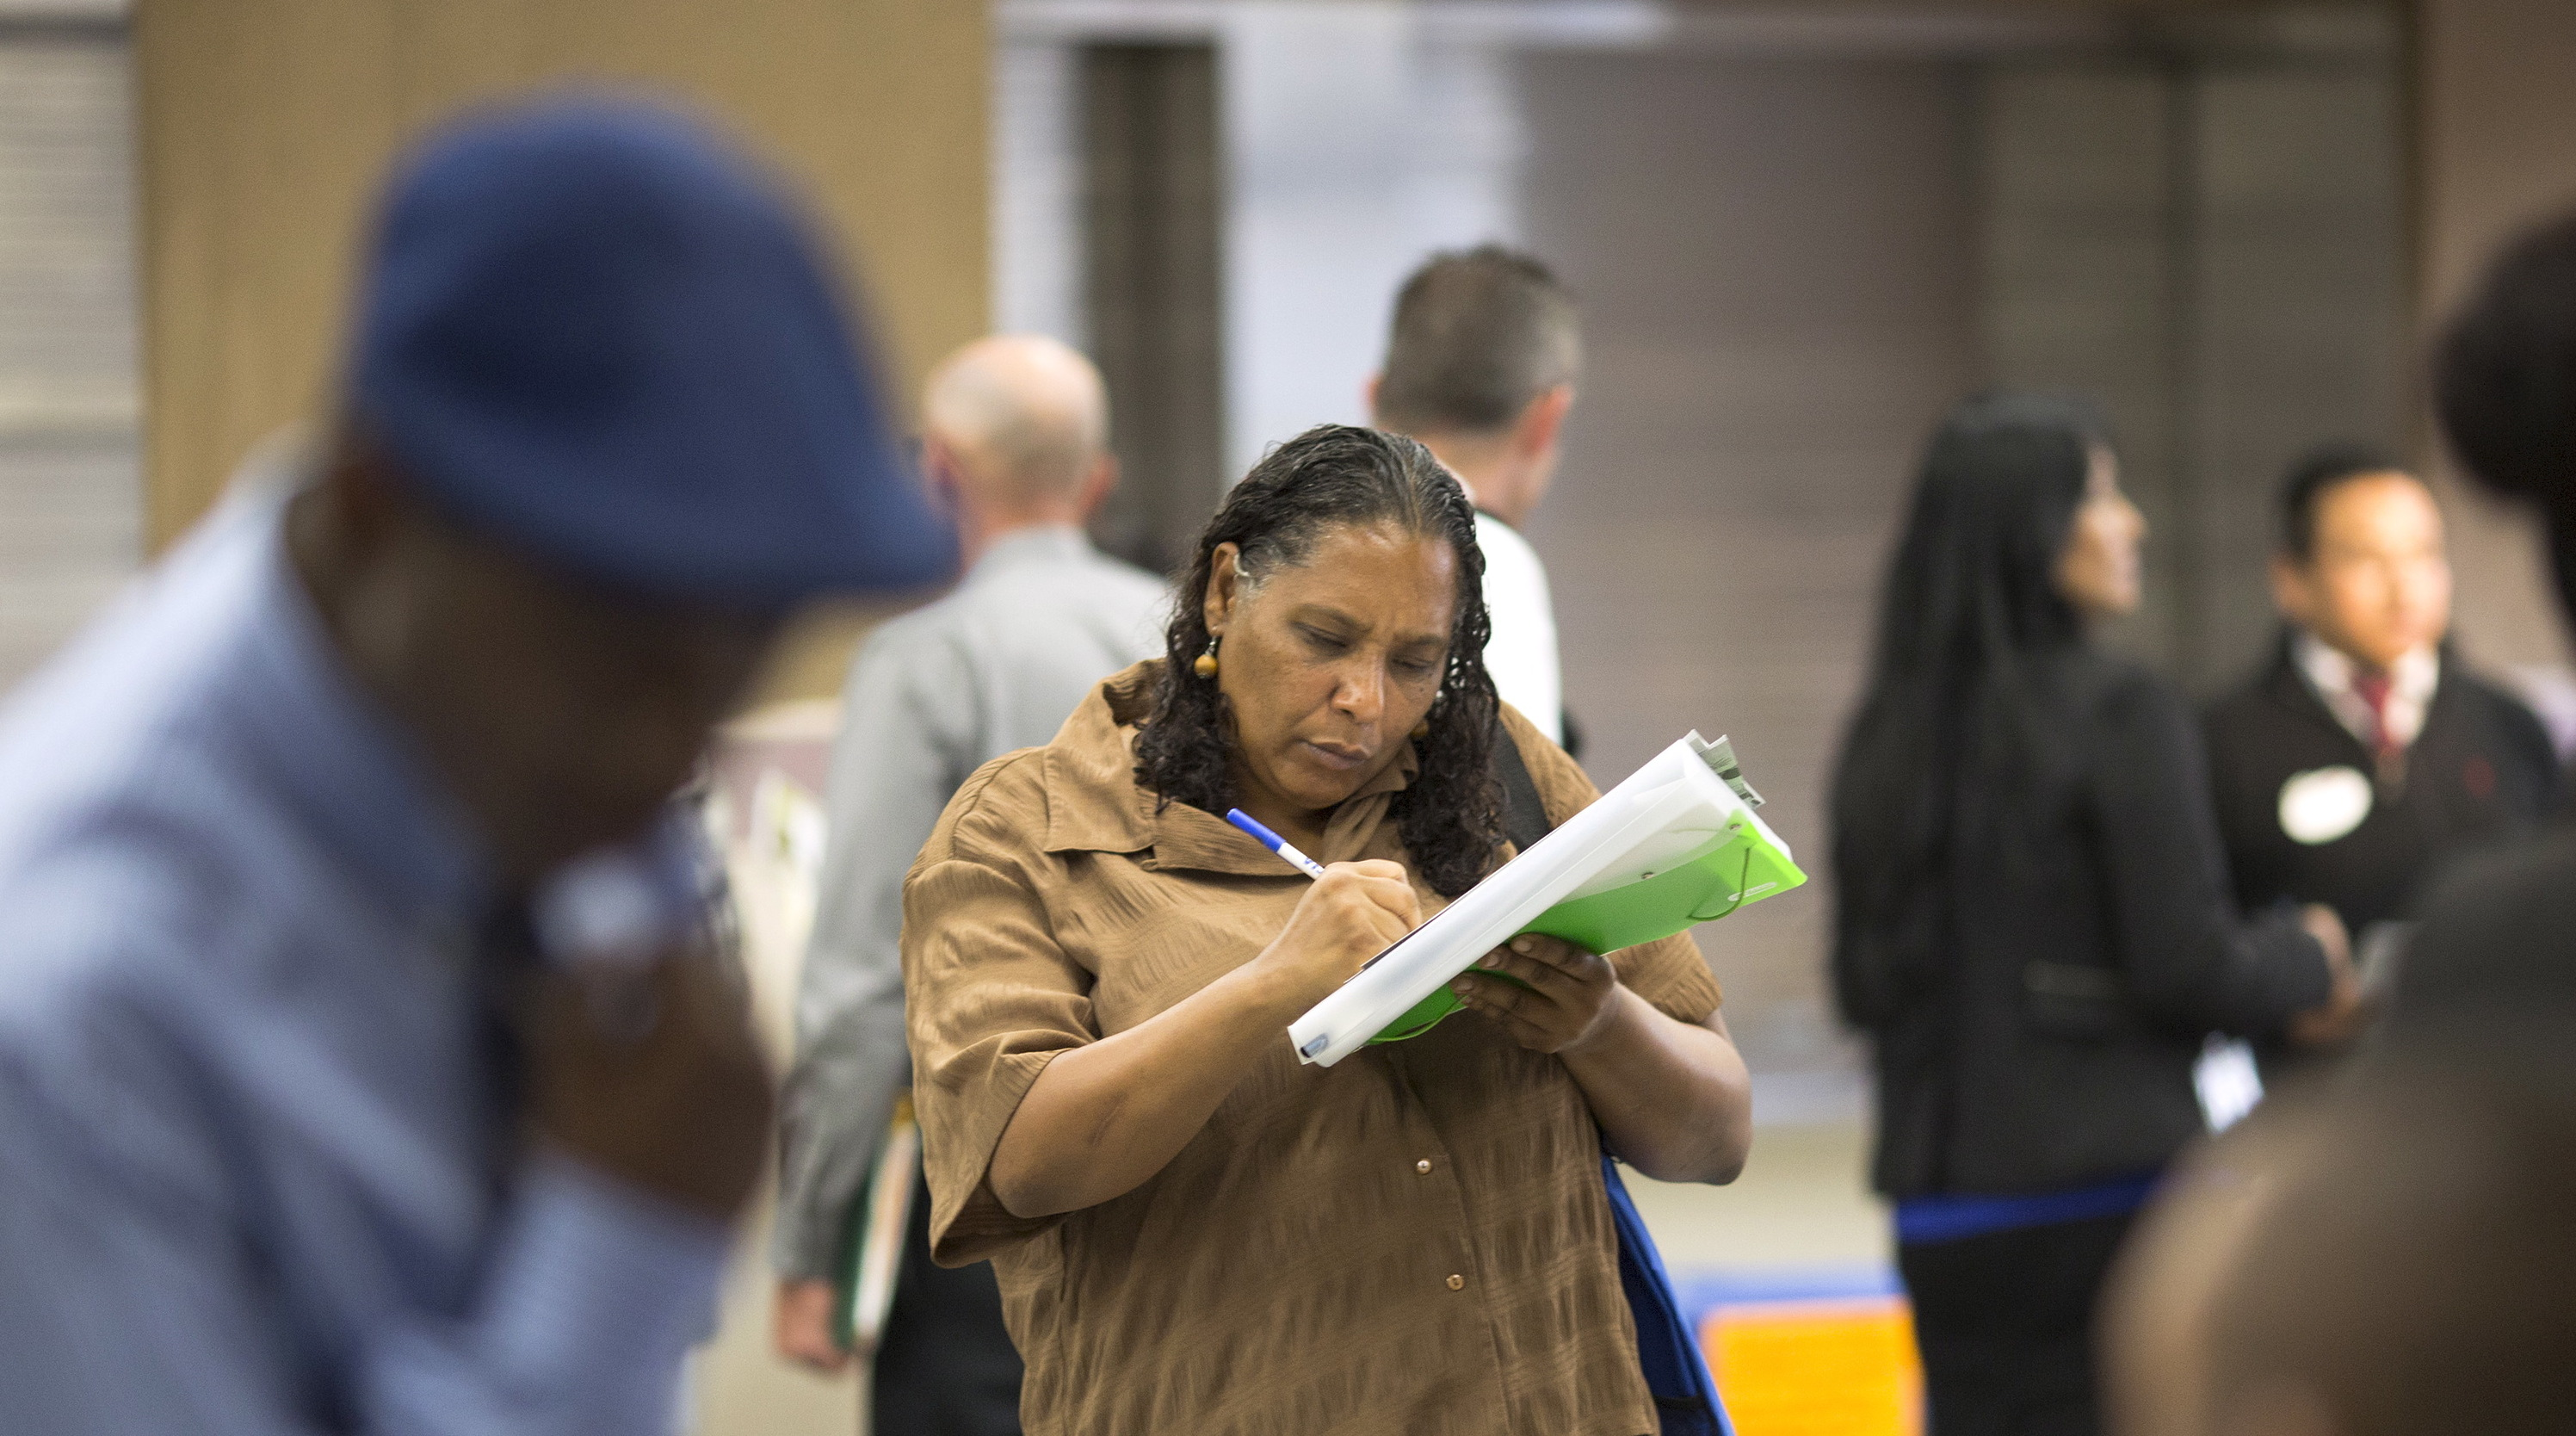 Malana Long fills out job application during job fair for homeless at Los Angeles Mission in Skid Row area of Los Angeles, California.